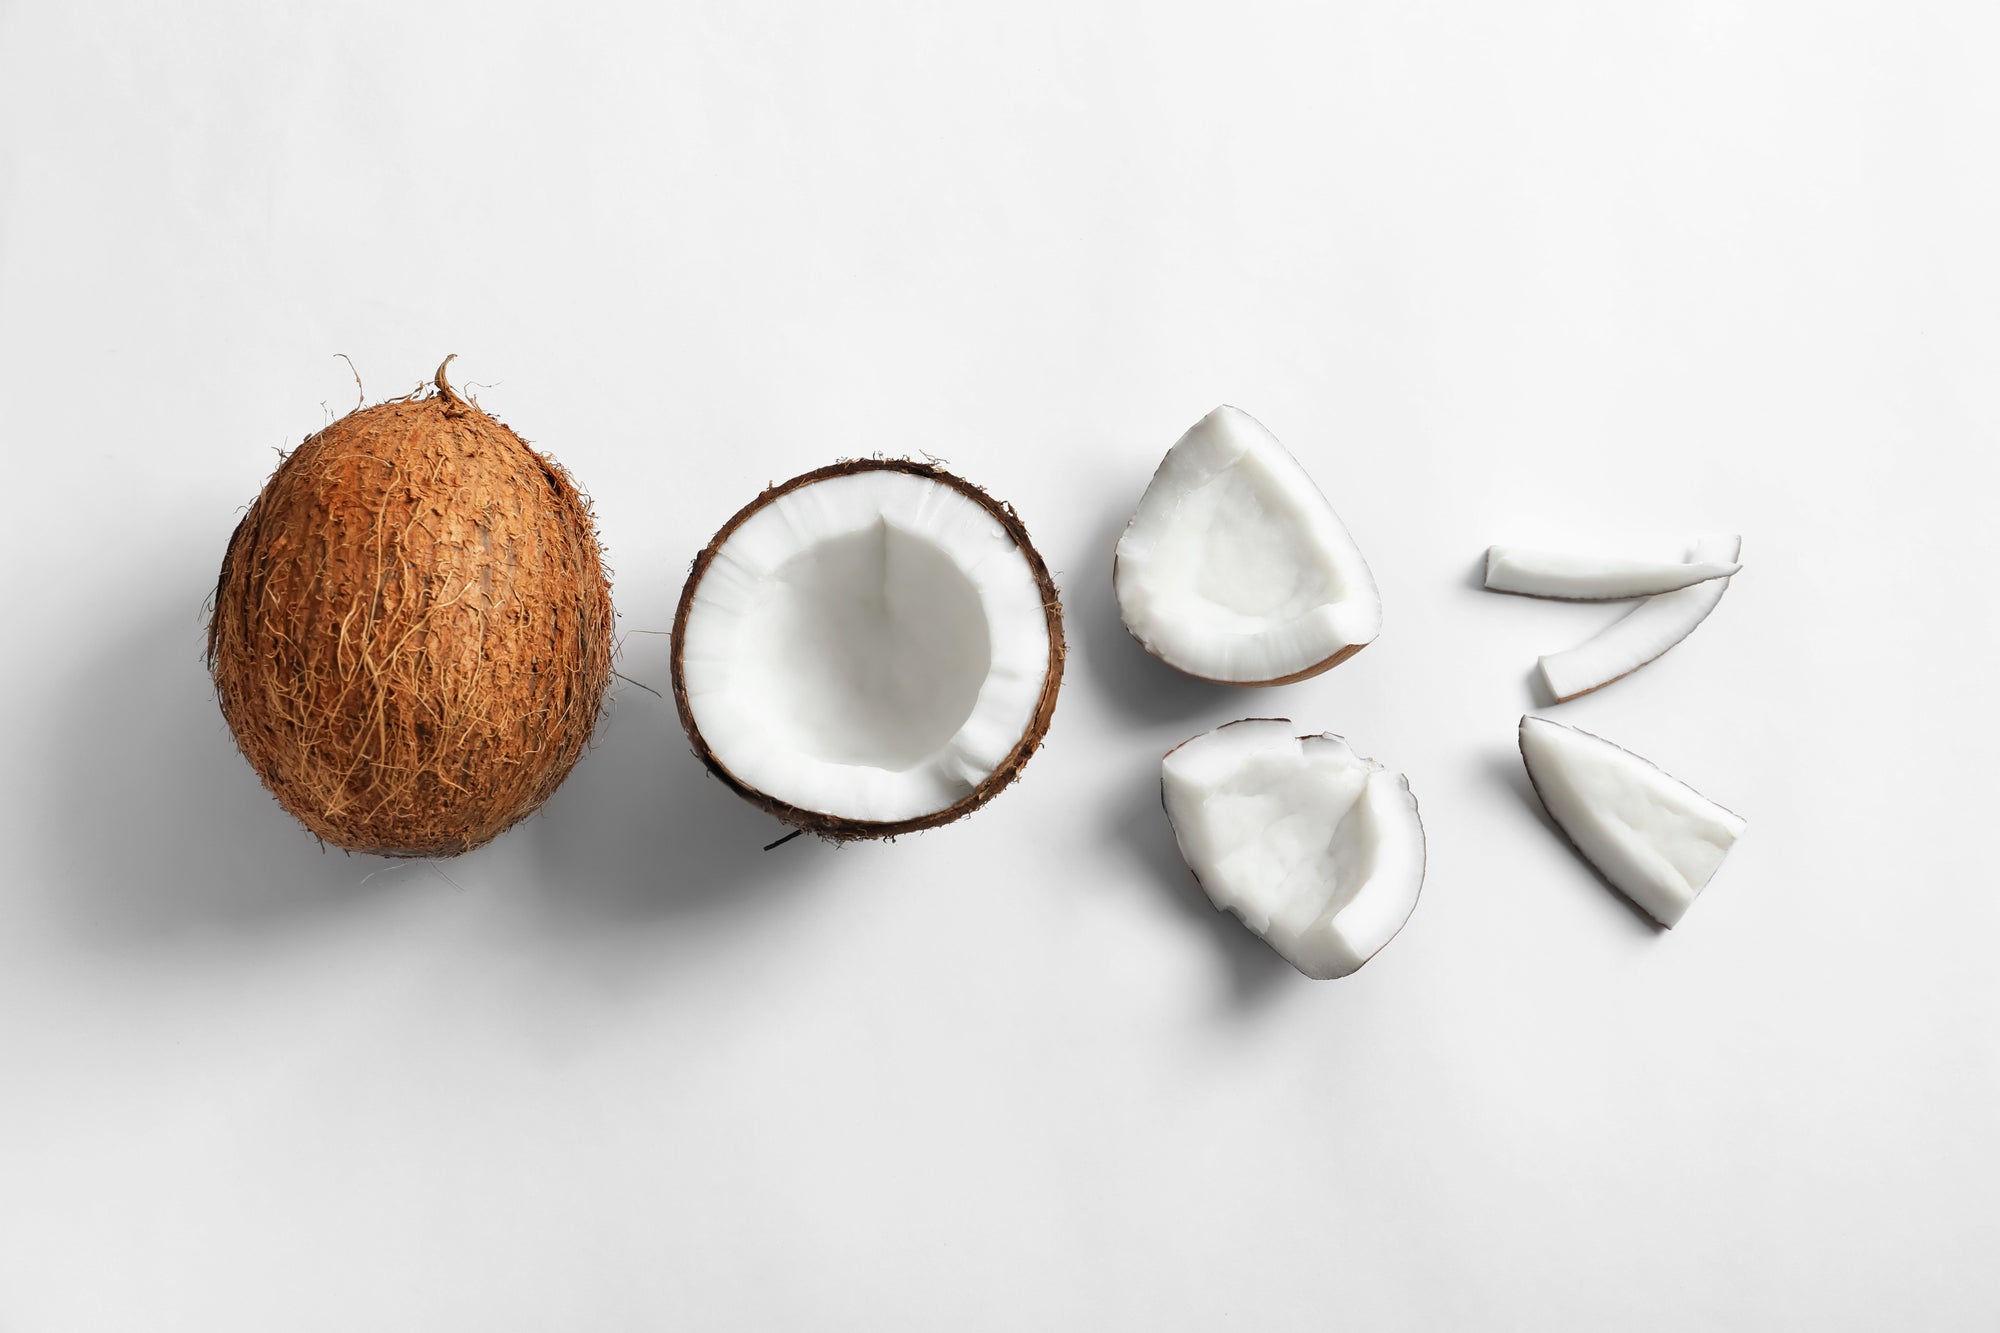 Coconuts on white background with a full coconut and one that has been cracked into pieces